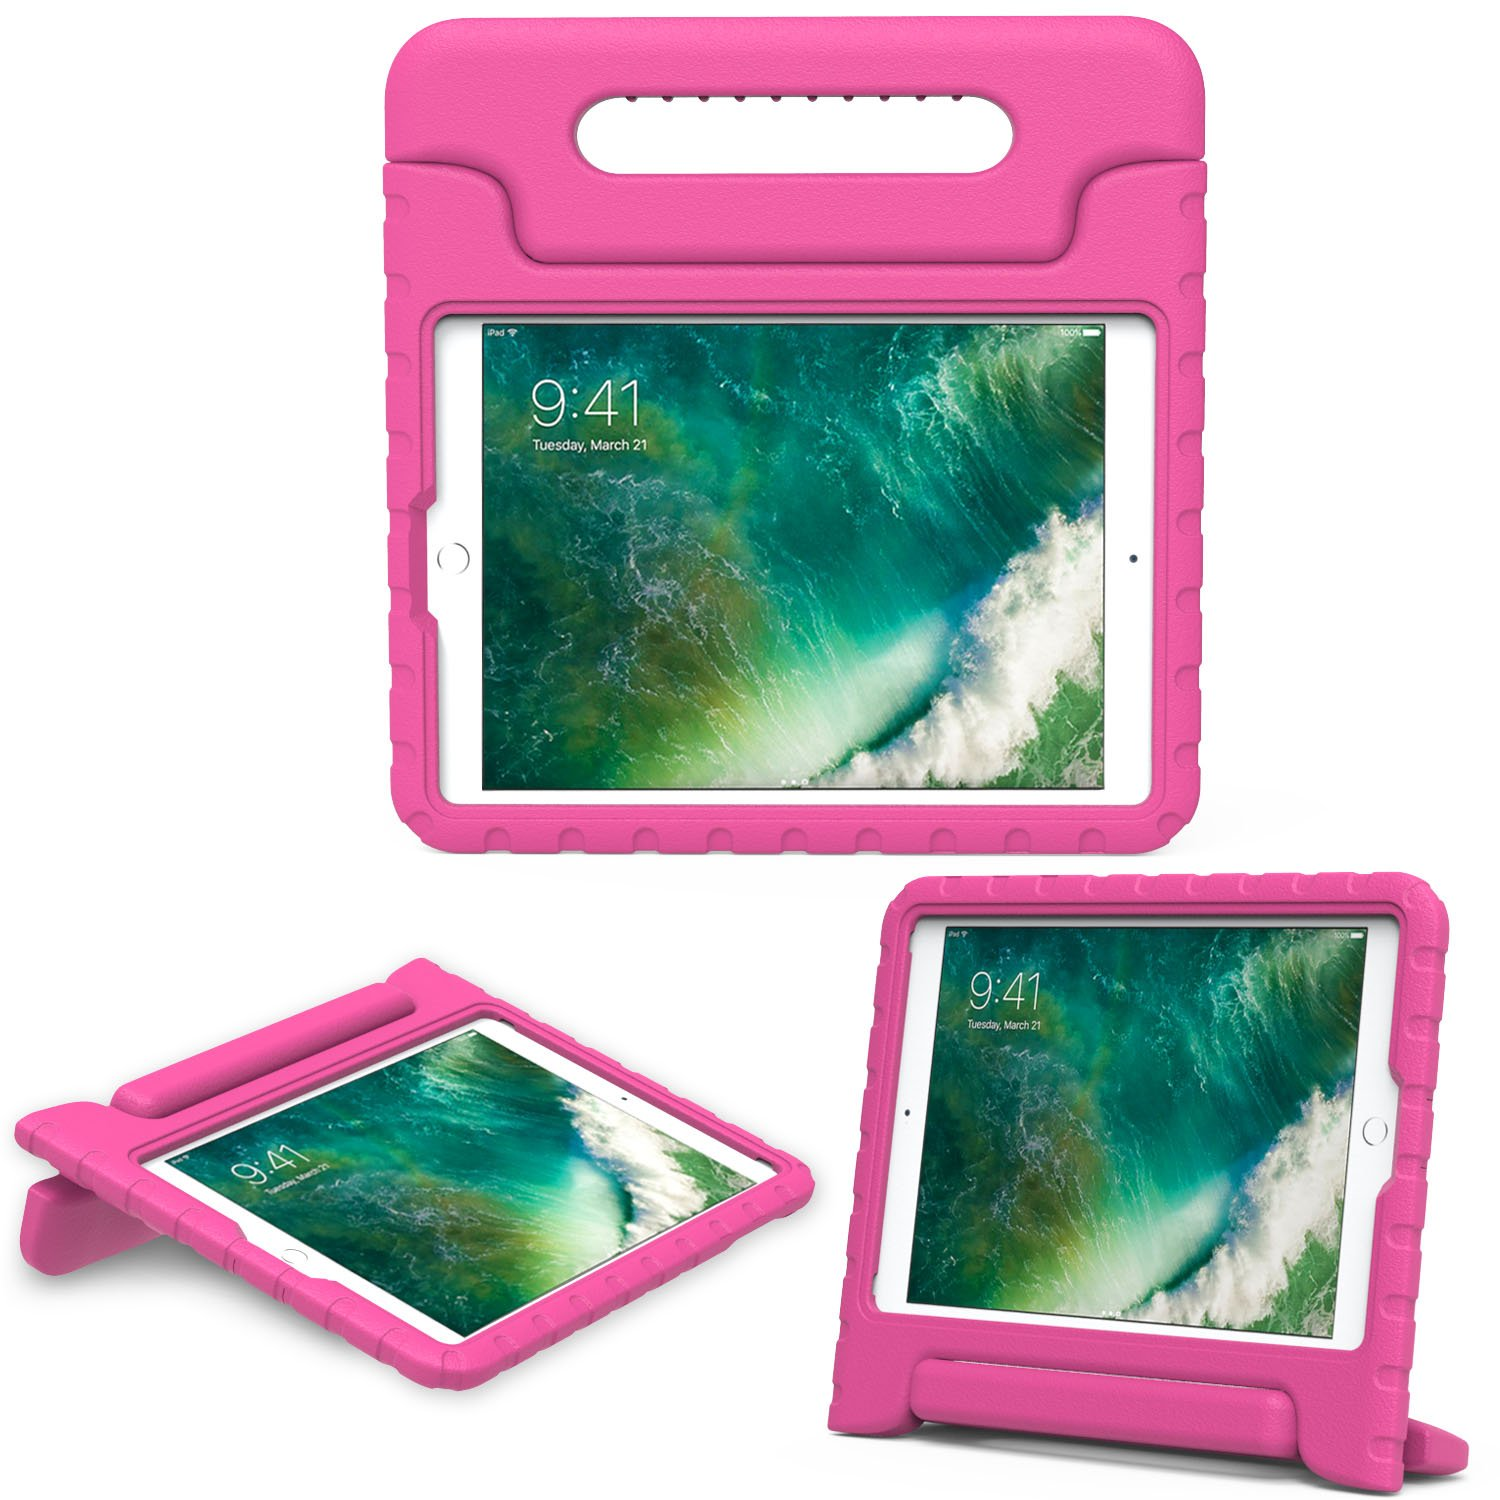 MoKo Case Fit 2018/2017 iPad 9.7 6th/5th Generation/iPad Air/iPad Air 2 - Kids Friendly Shock Proof Convertible Handle Light Weight Protective Stand Cover, Magenta